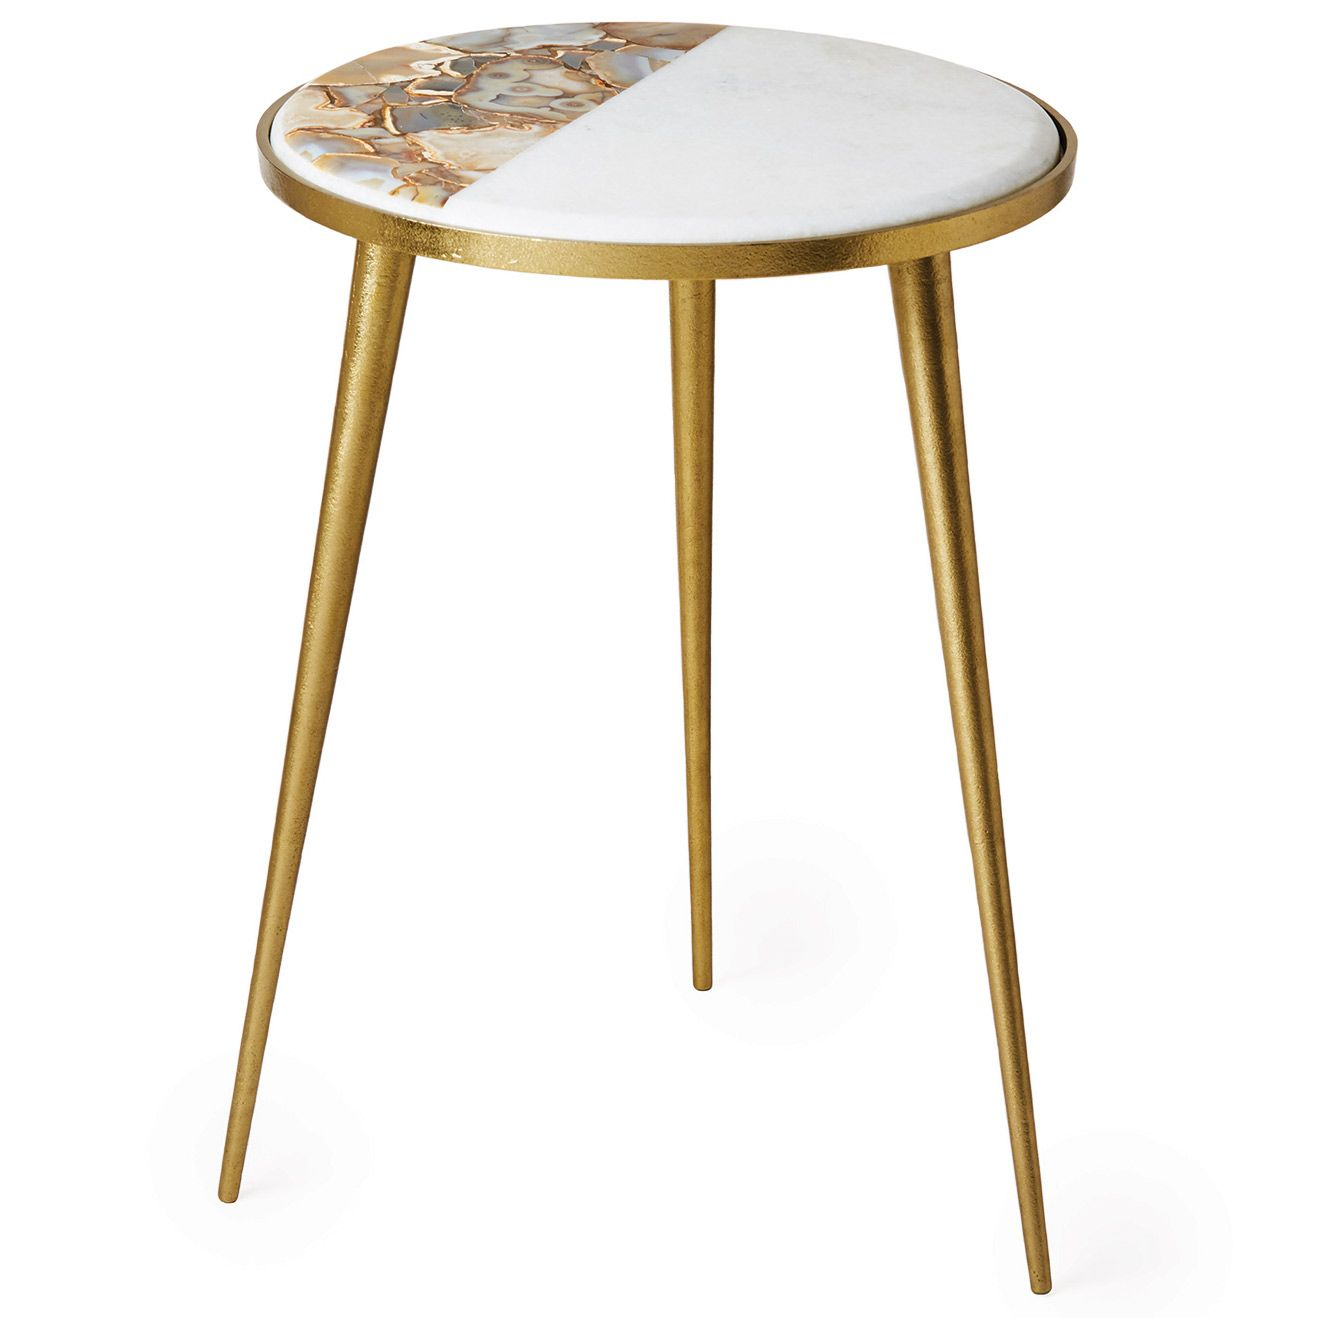 mid century influences lend the marble agate side table retro glass accent vibe this sleek metal furnishing showcases striking gold finish along petite round outside umbrella